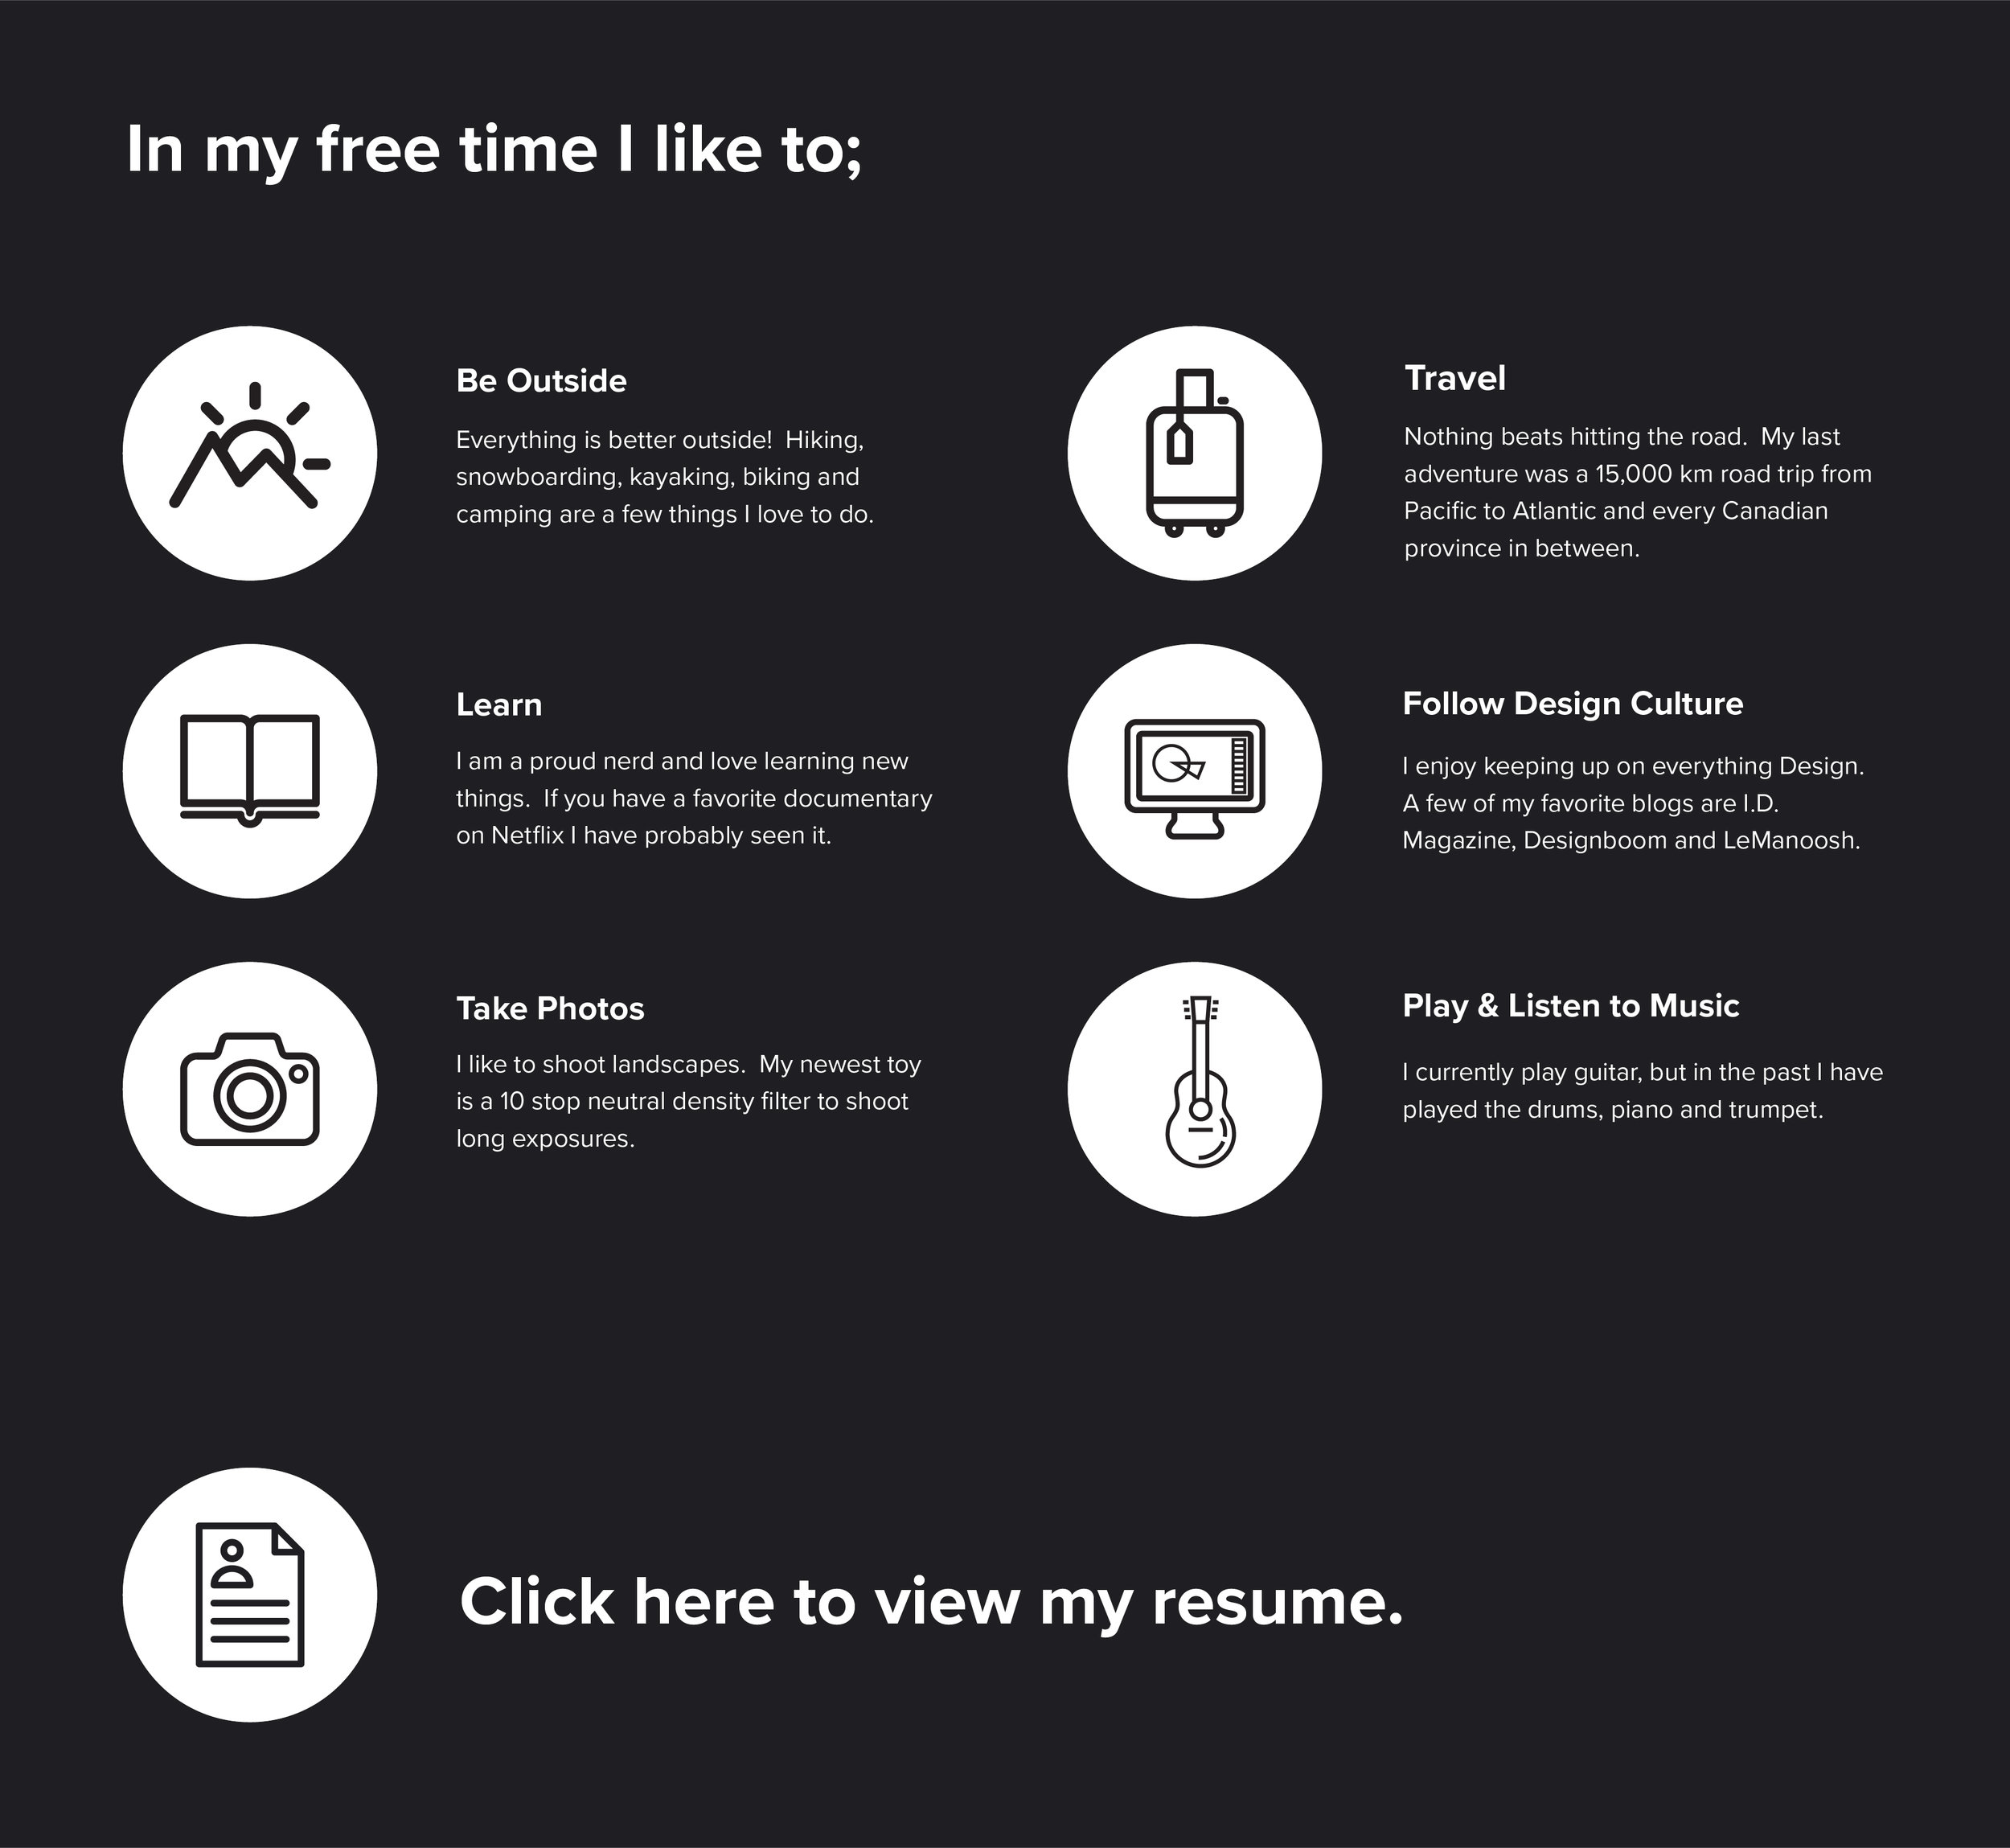 About Me. Interests And Resume